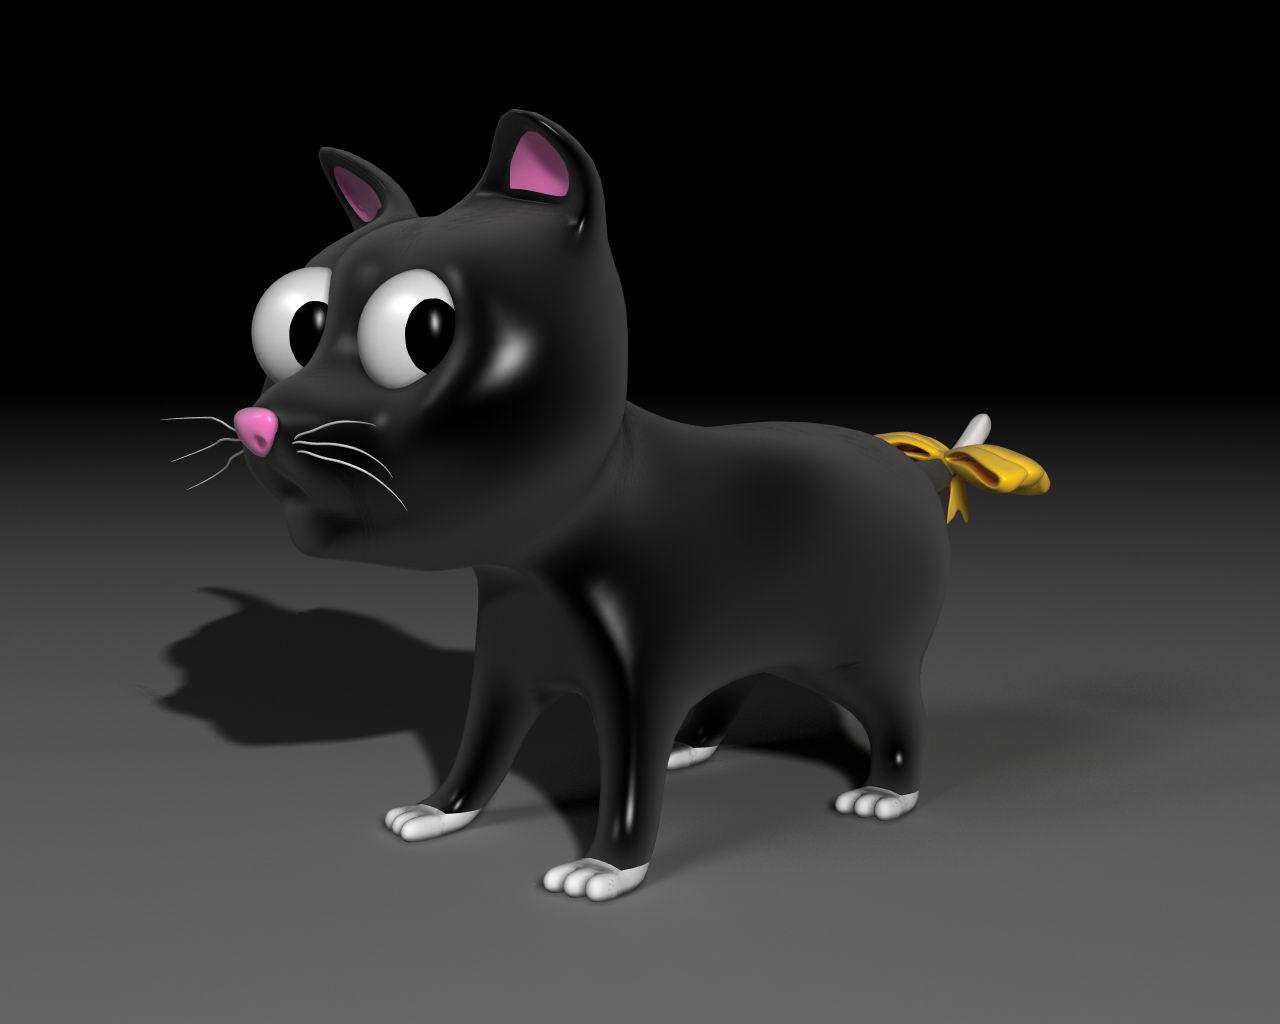 Toon Kitty Moon 3d líkan 3ds max 211663